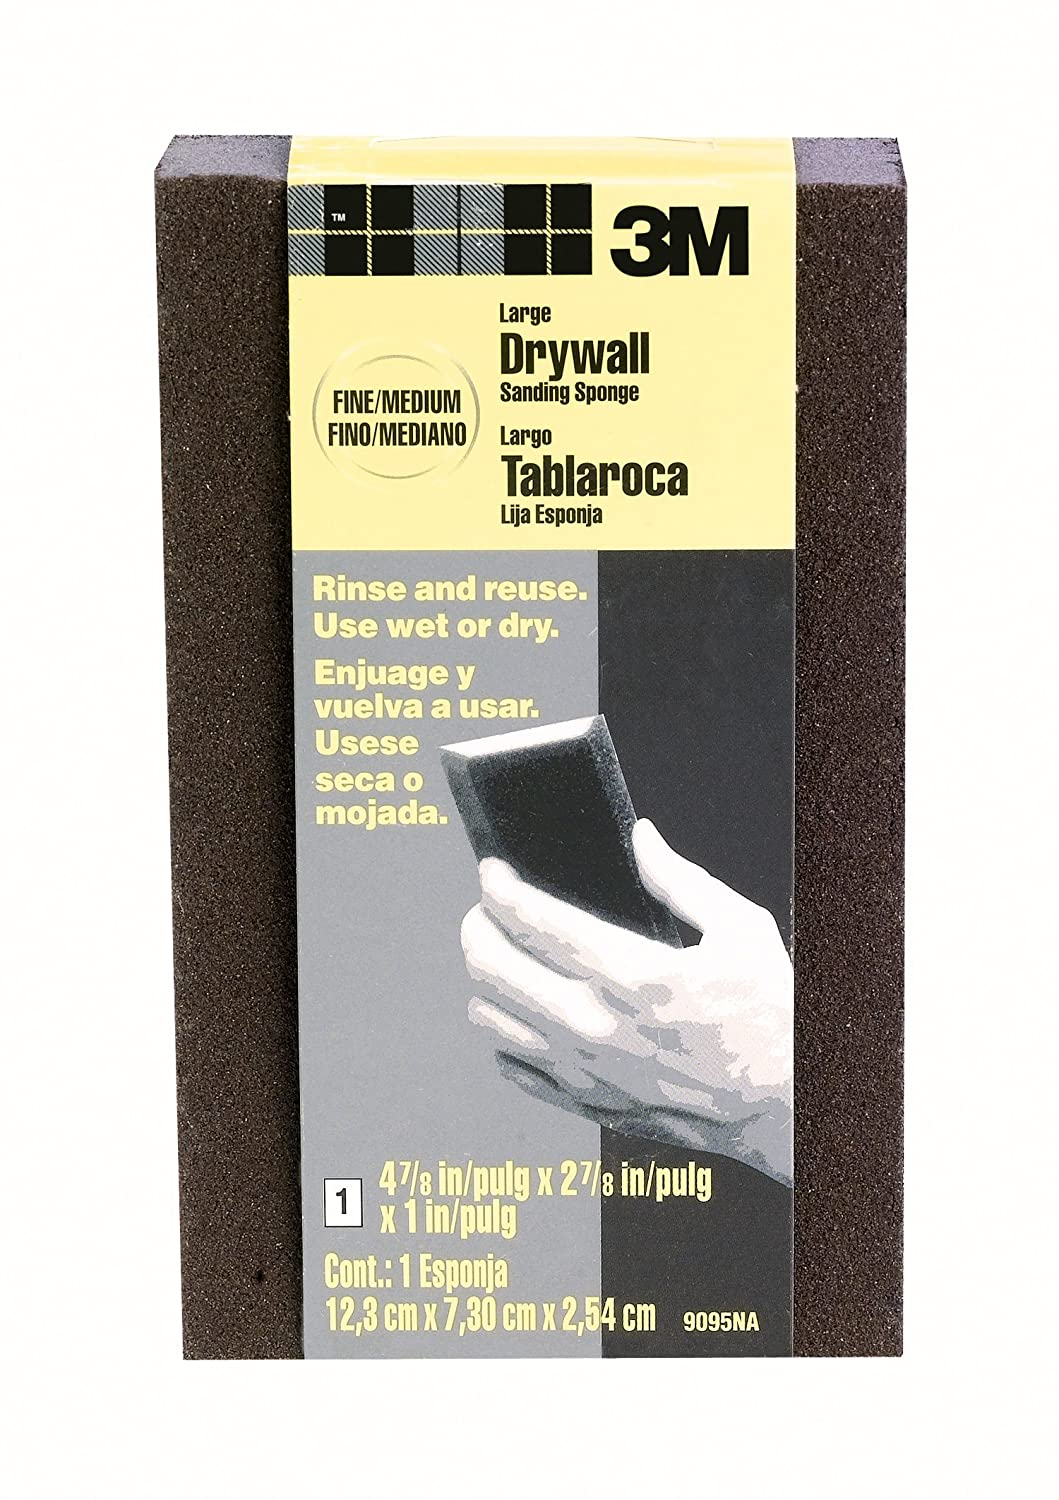 3M Large Area Drywall Sanding Sponge, Fine/Medium, 4.875-Inch by 2.875-Inch by 1-Inch, Black - 9095NA